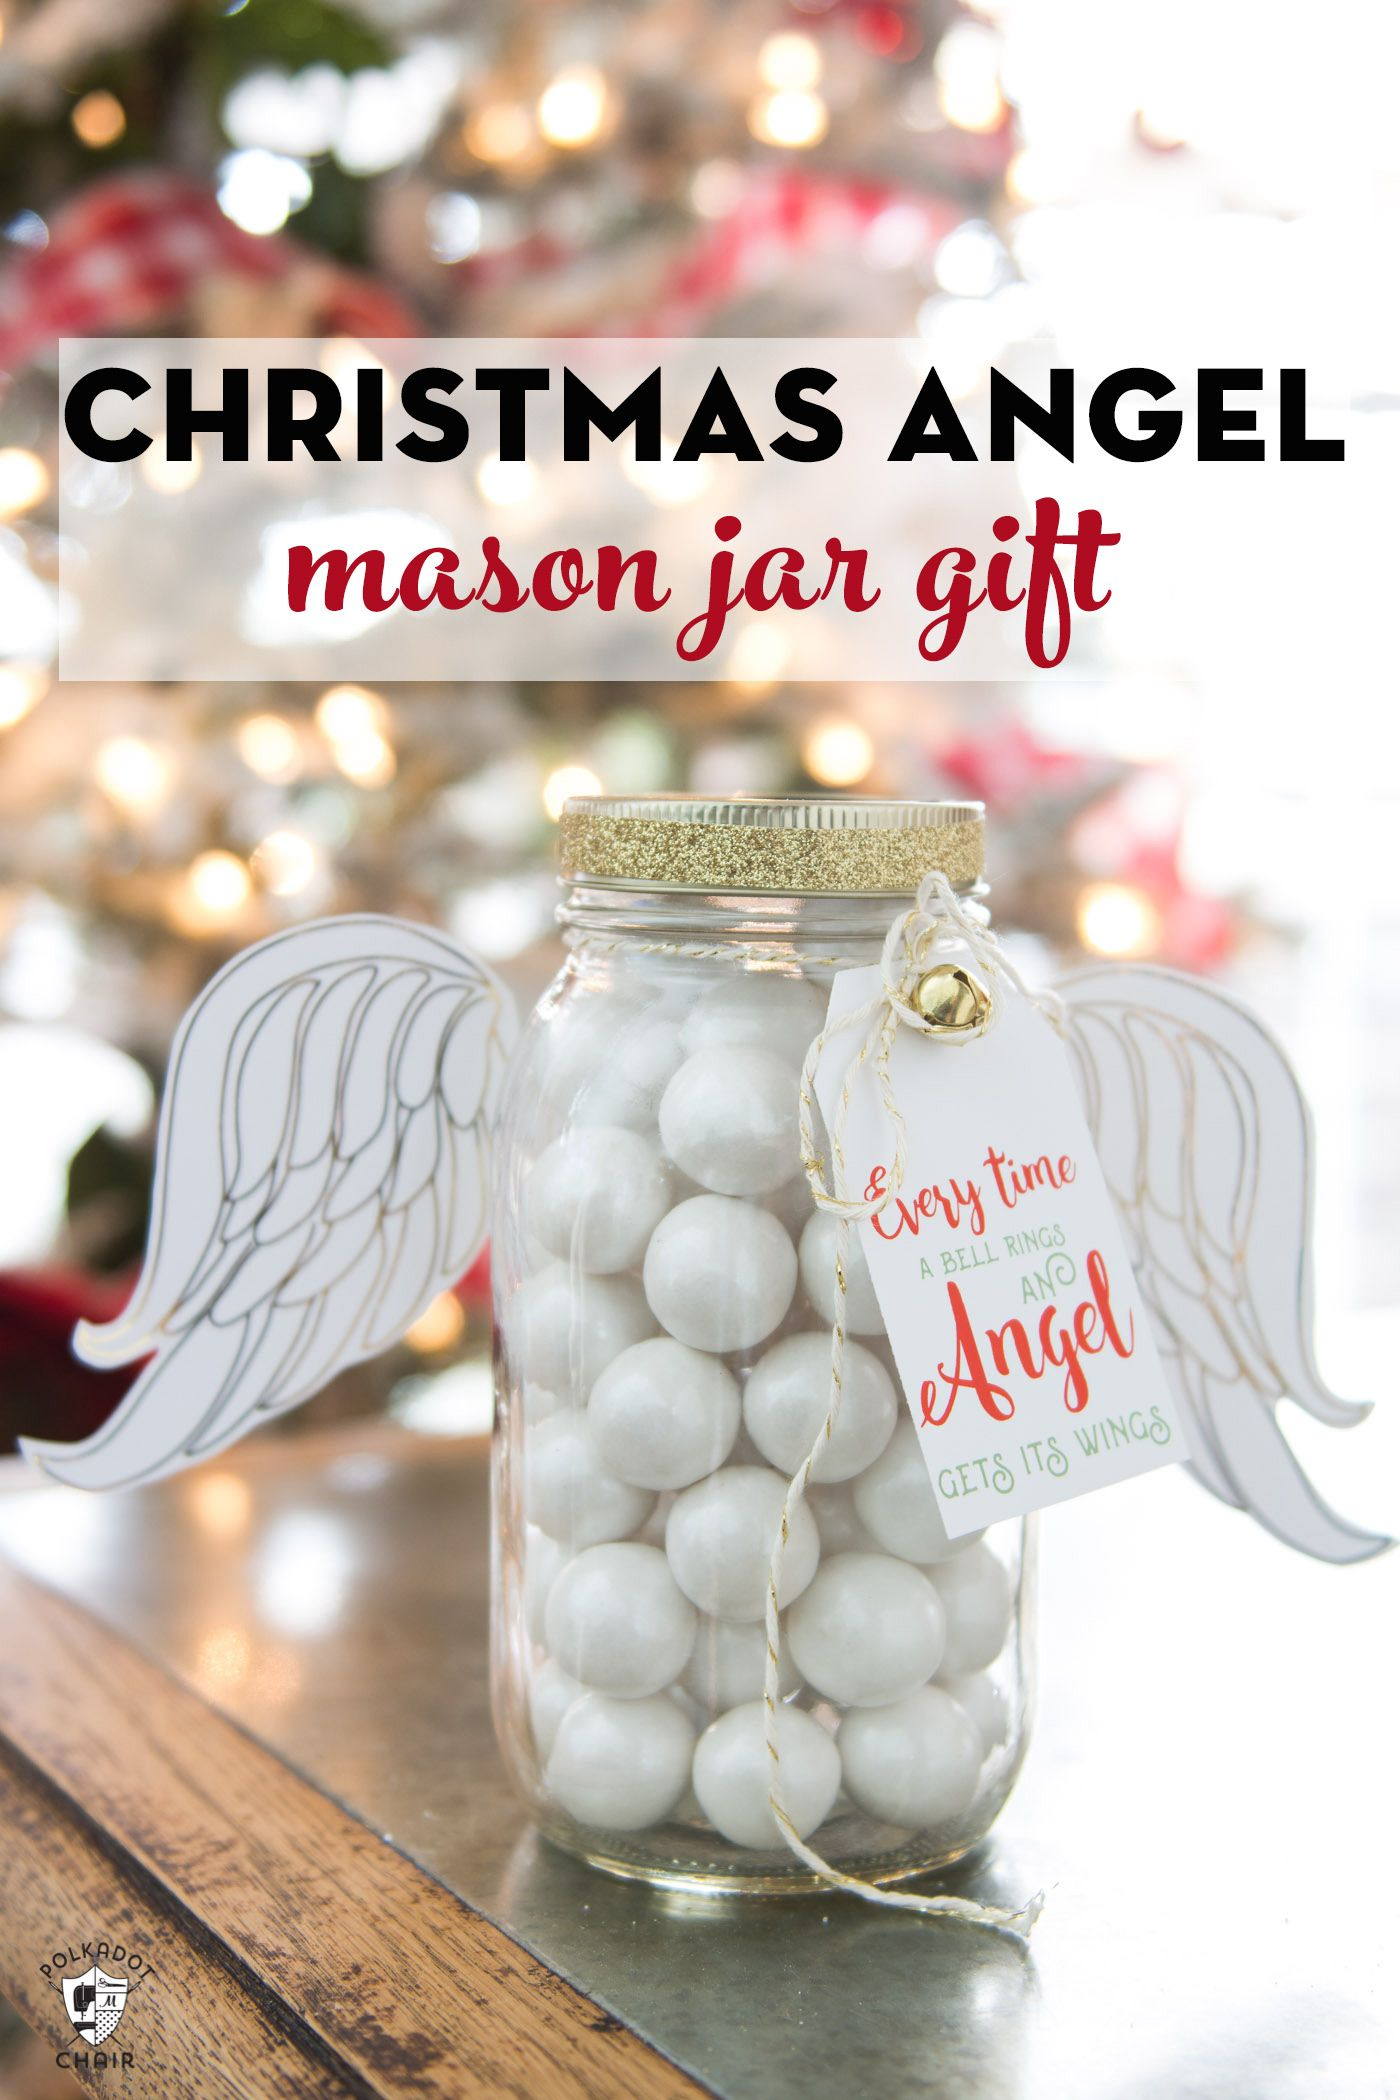 Christmas angel mason jar gift | 25+ more mason jar gift ideas